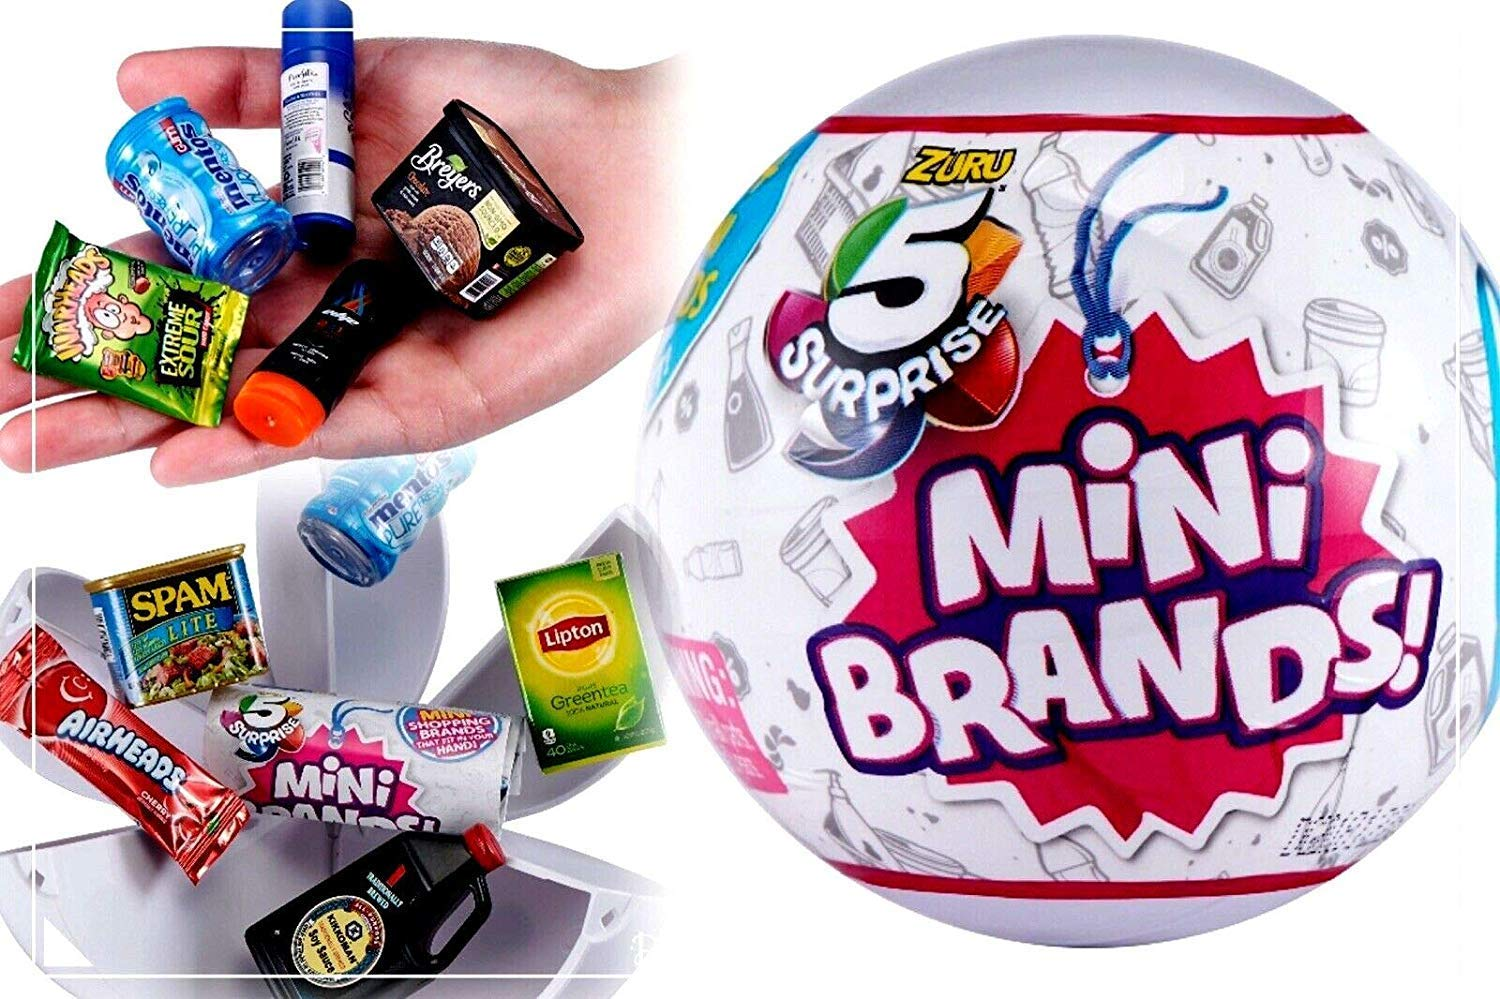 5-Surprise Mini Brands Collectible Capsule Ball by Zuru - 3 Ball Bundle